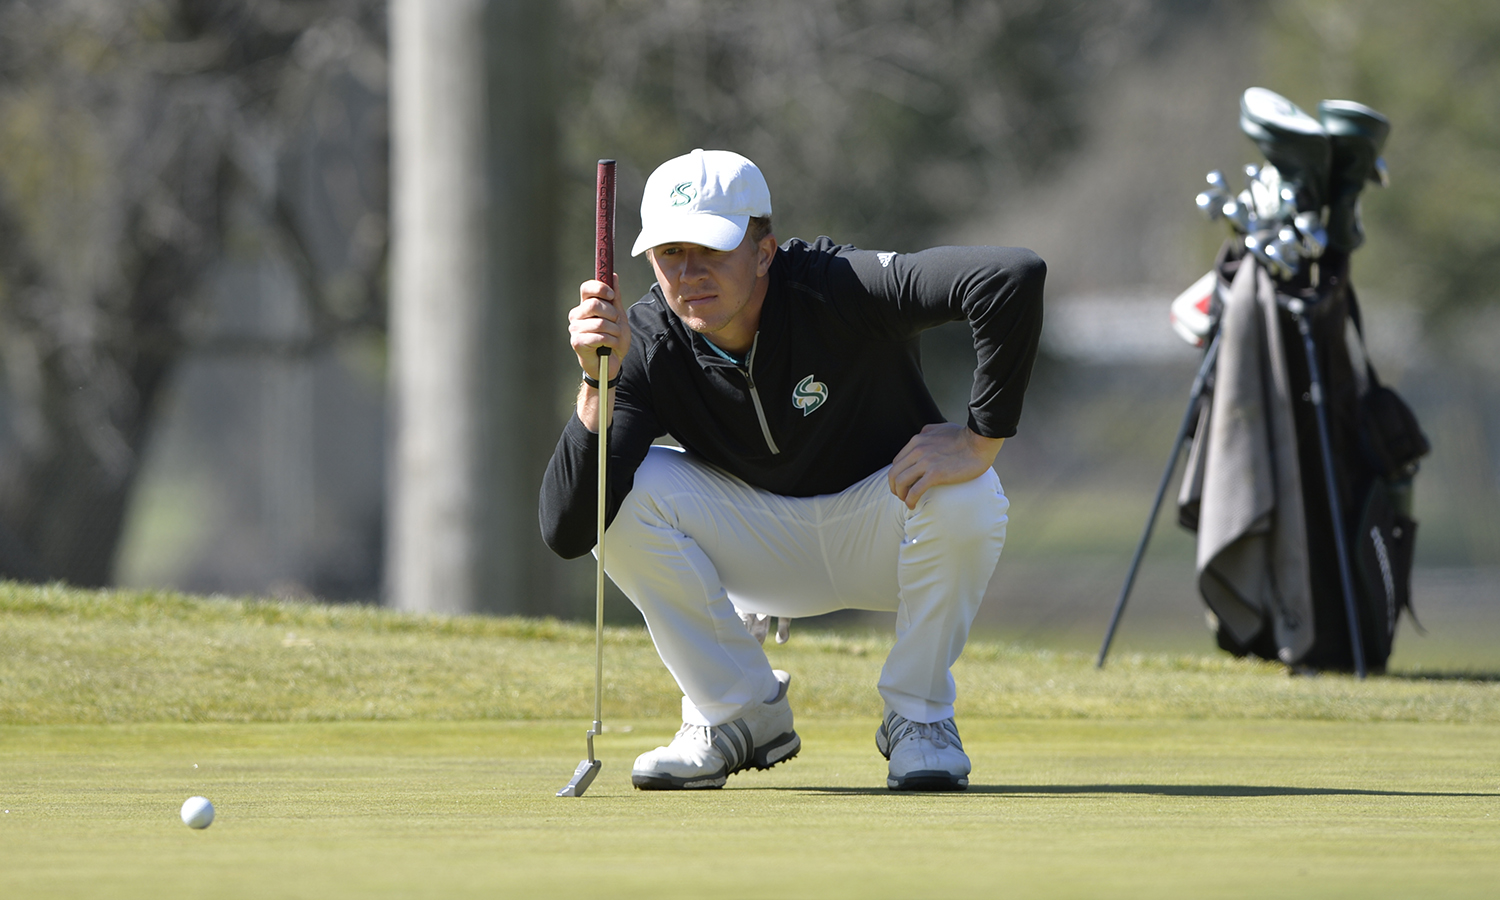 MEN'S GOLF POSTS BEST ROUNDS OF THE YEAR AT NICK WATNEY INVITATIONAL